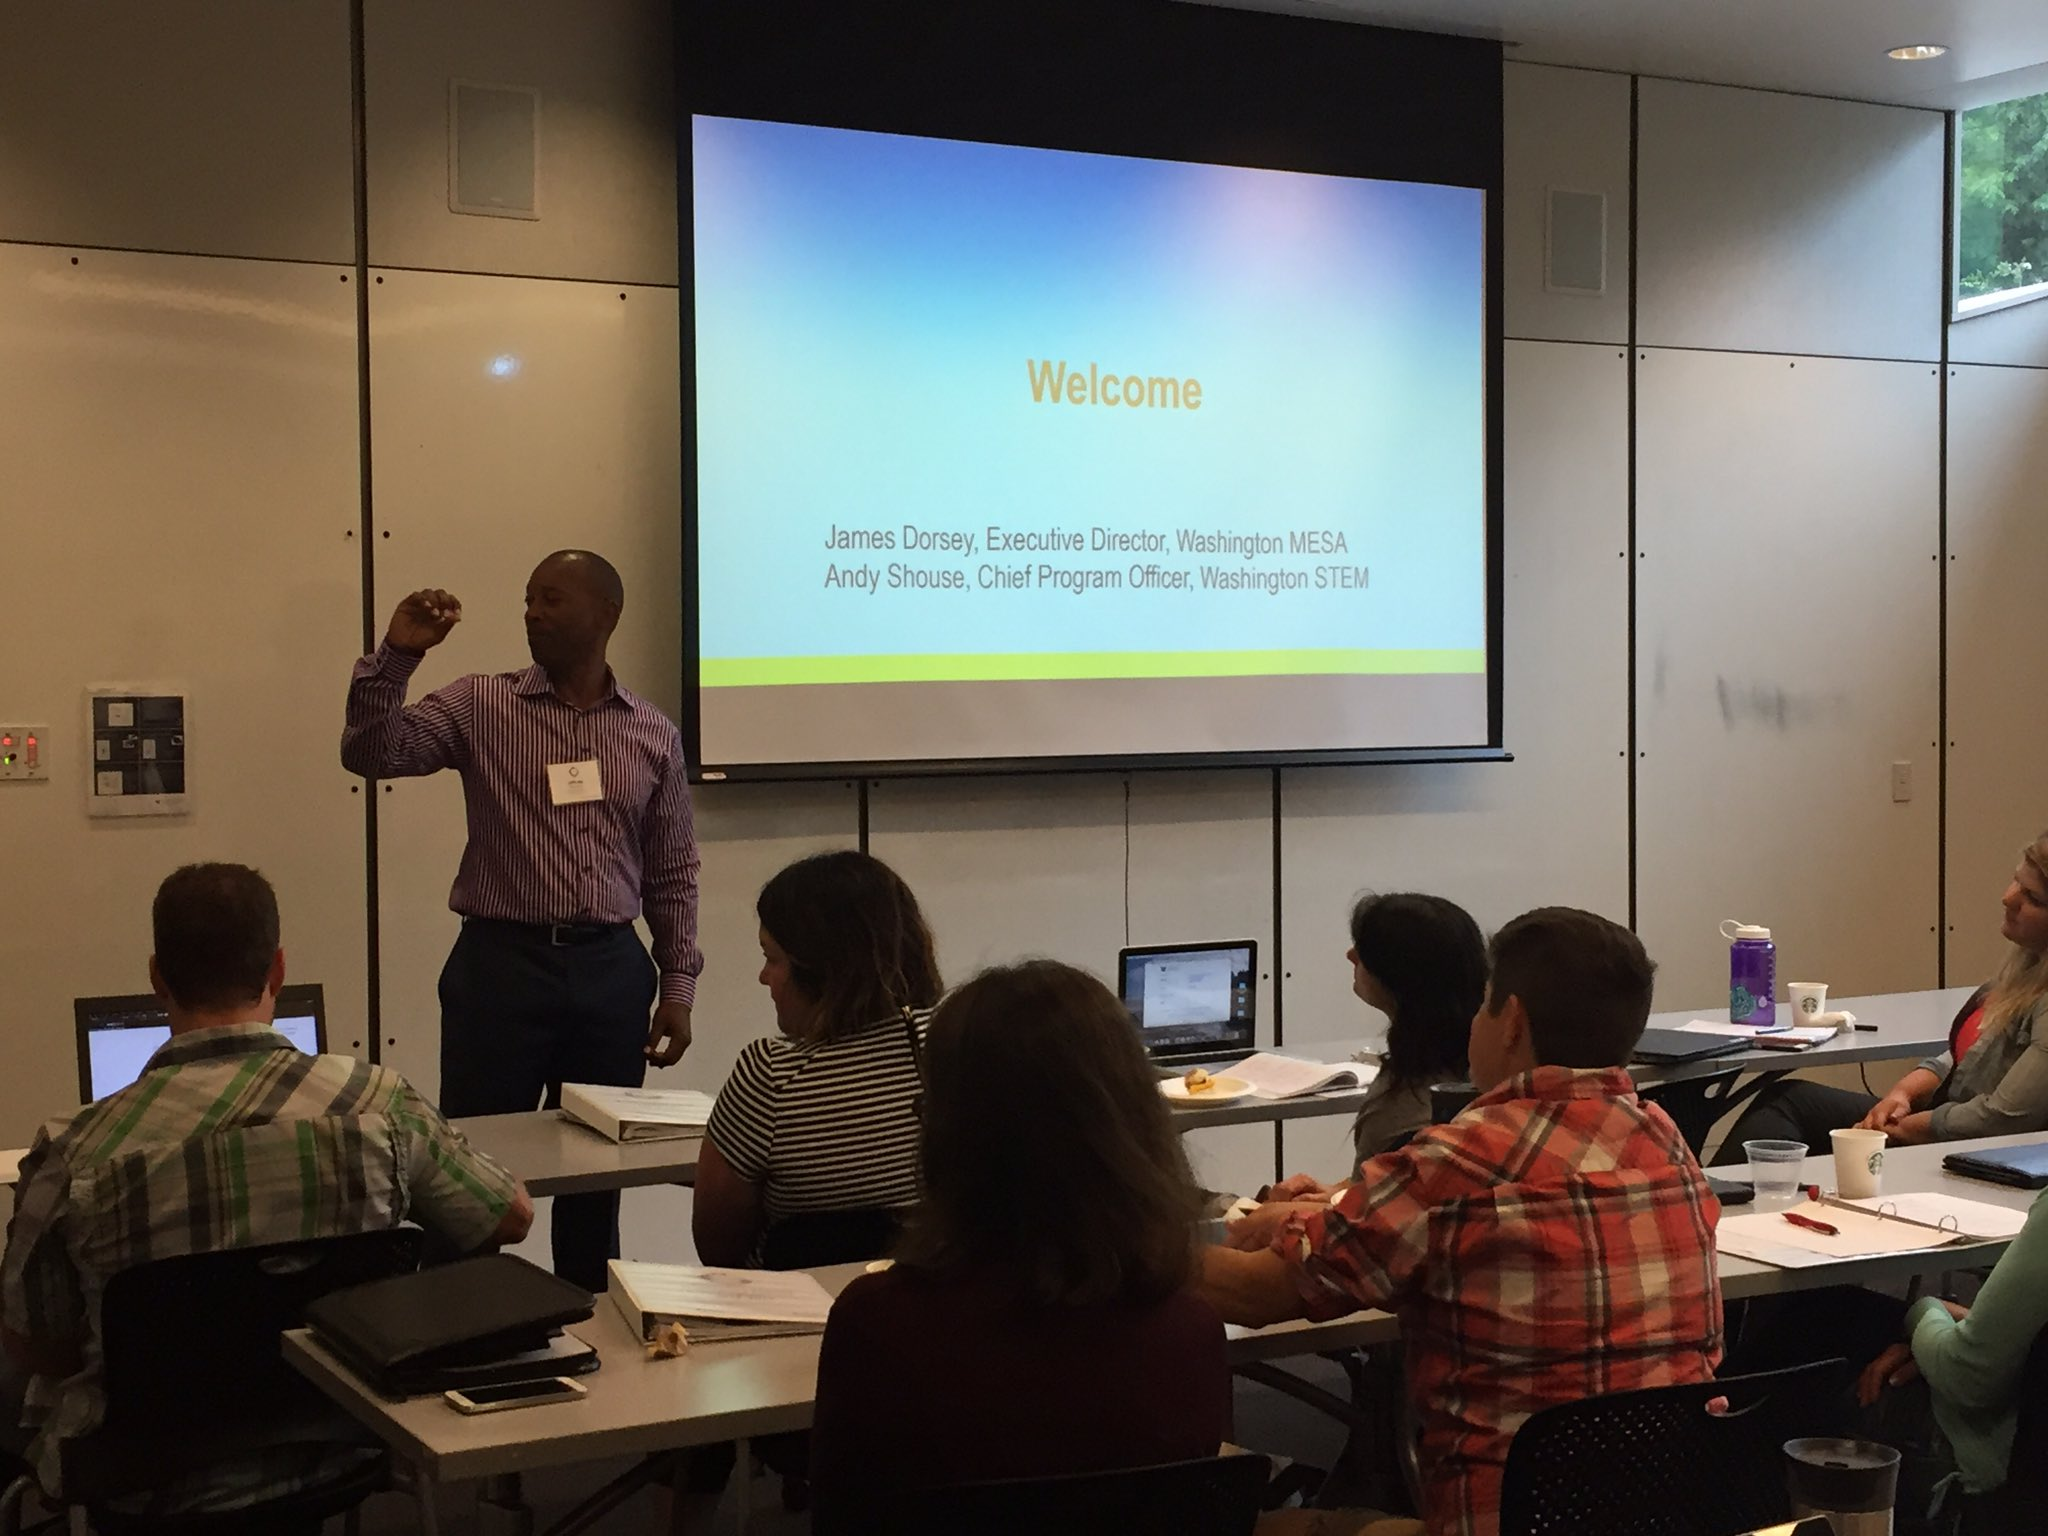 @washingtonstem and our ED, James Dorsey, kicking the week off #EngineeringFellows #STEMeducation https://t.co/BHaNNCCn54